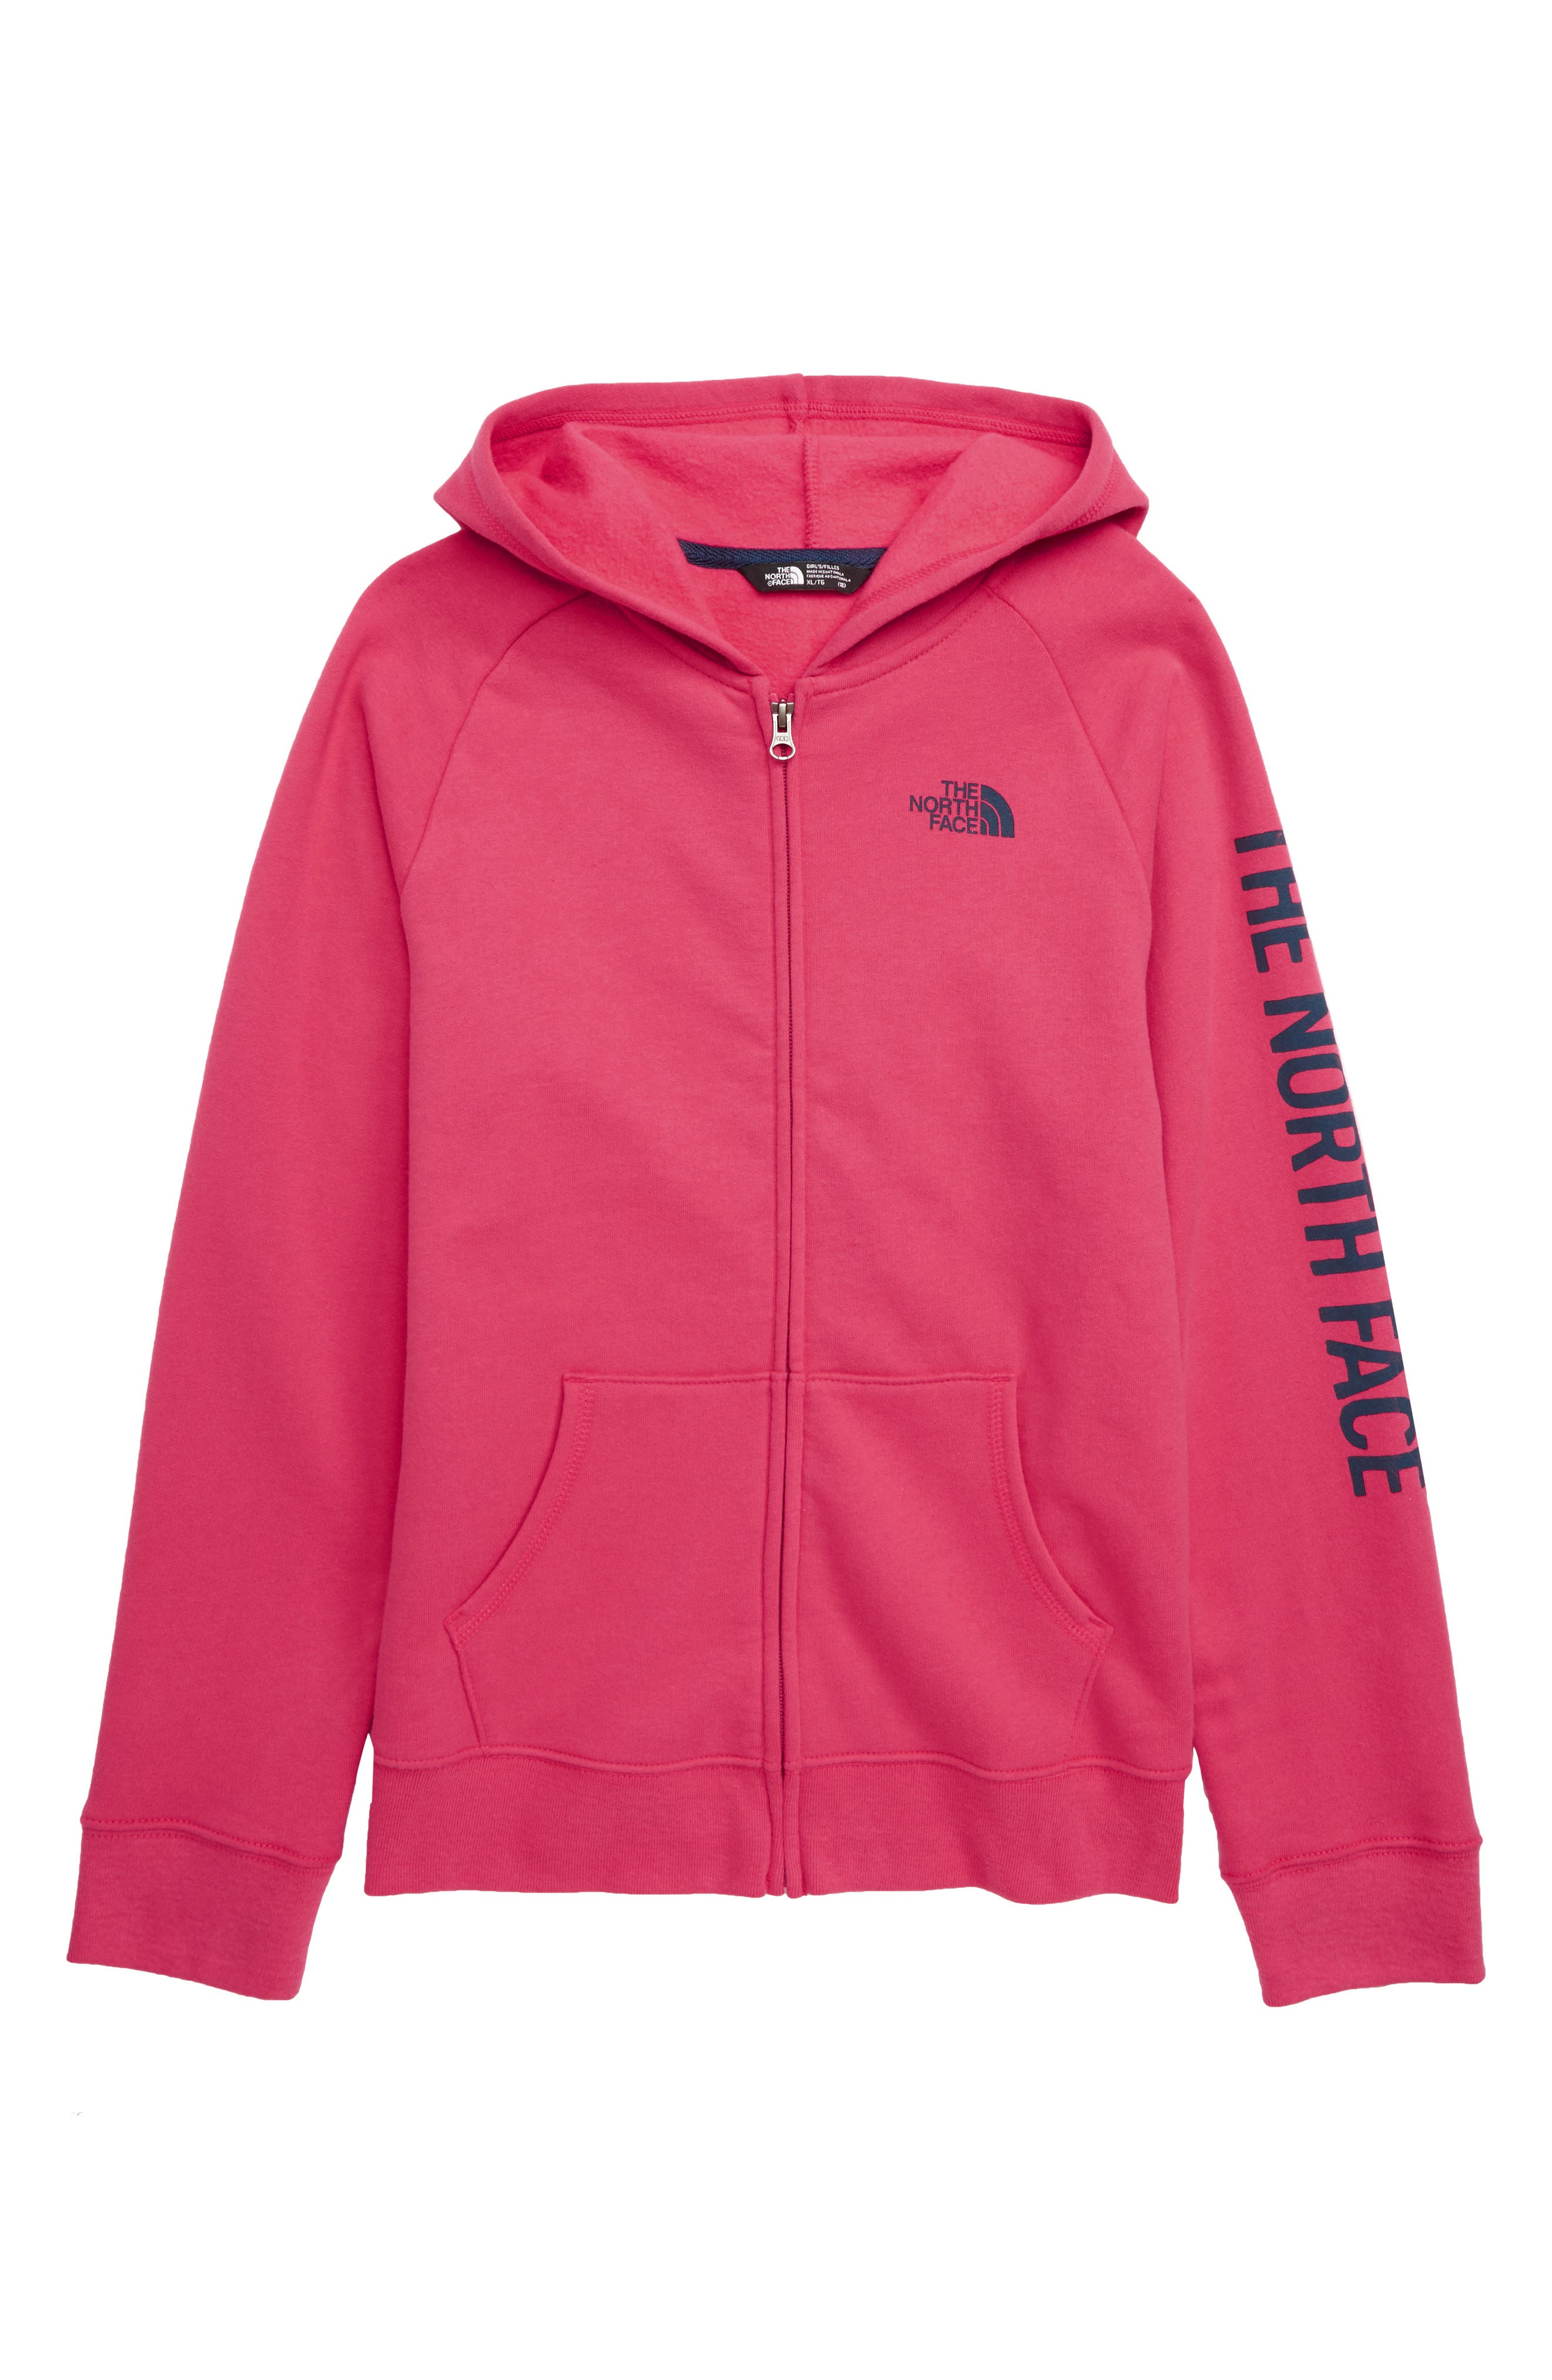 Girls The North Face Logowear Full Zip Hoodie Size L (1416)  Pink